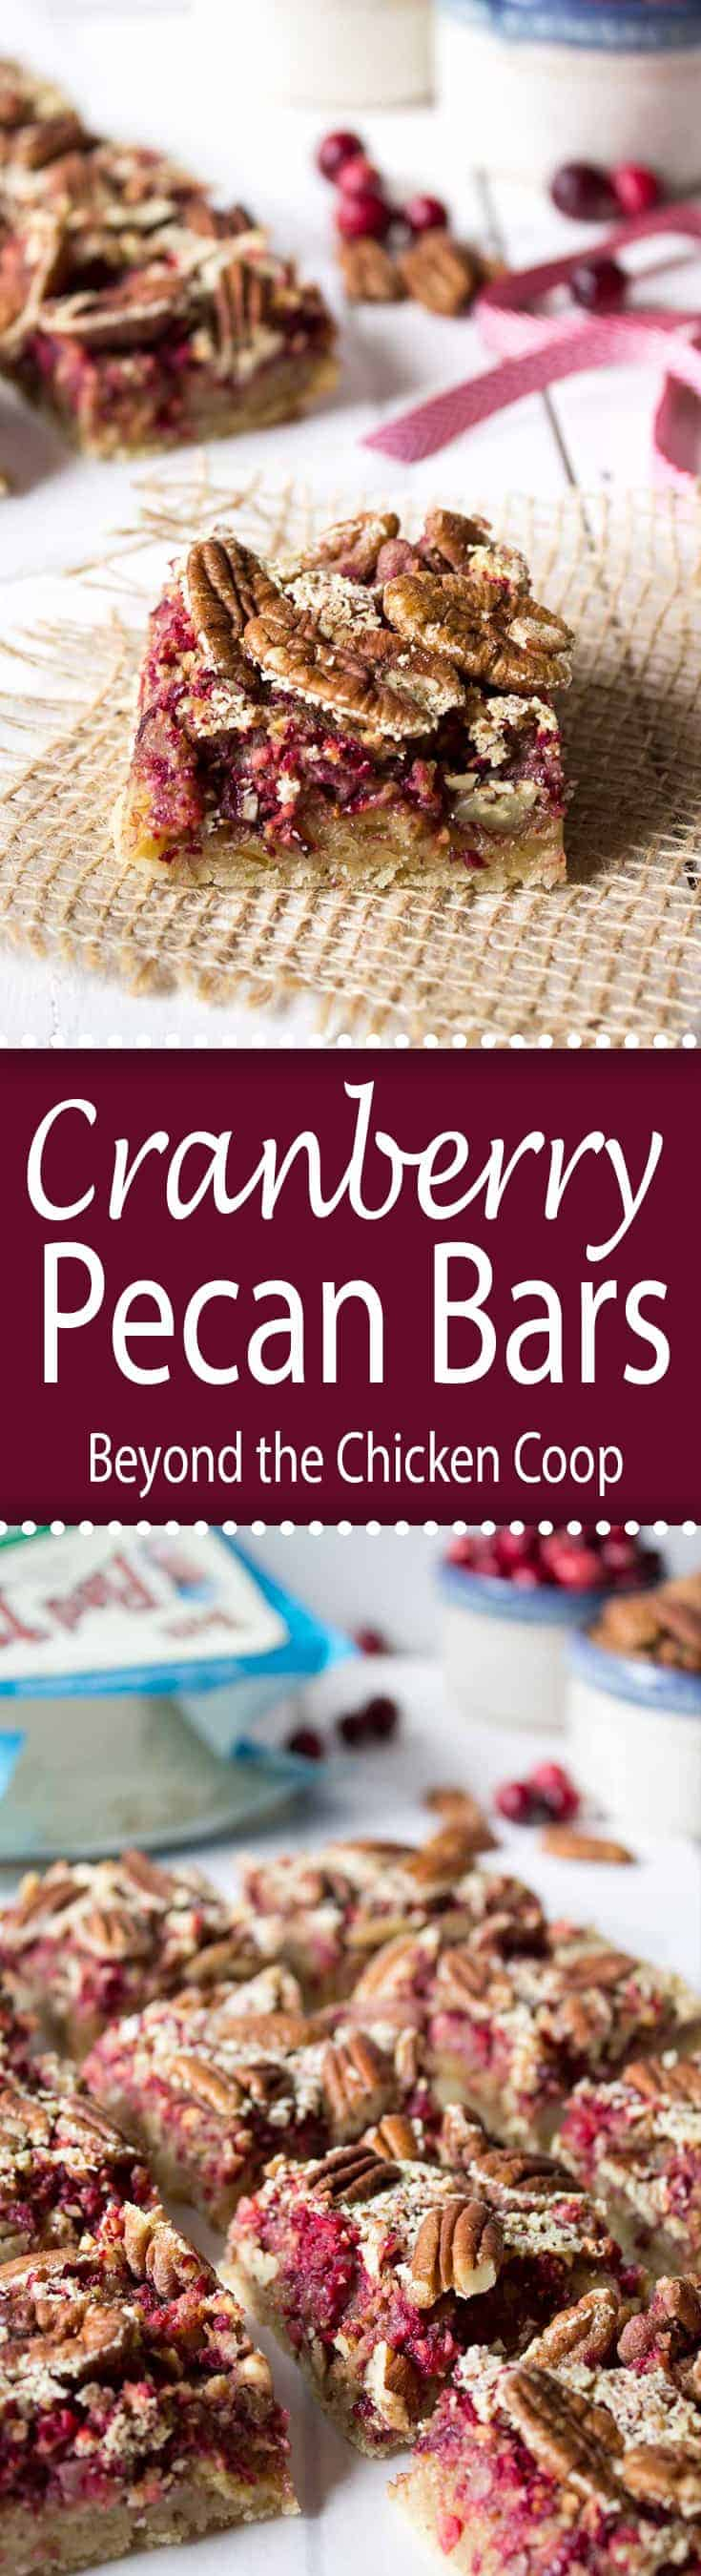 AD: Cranberry Pecan Bars are perfect for holiday giving and adding to a cookie tray.